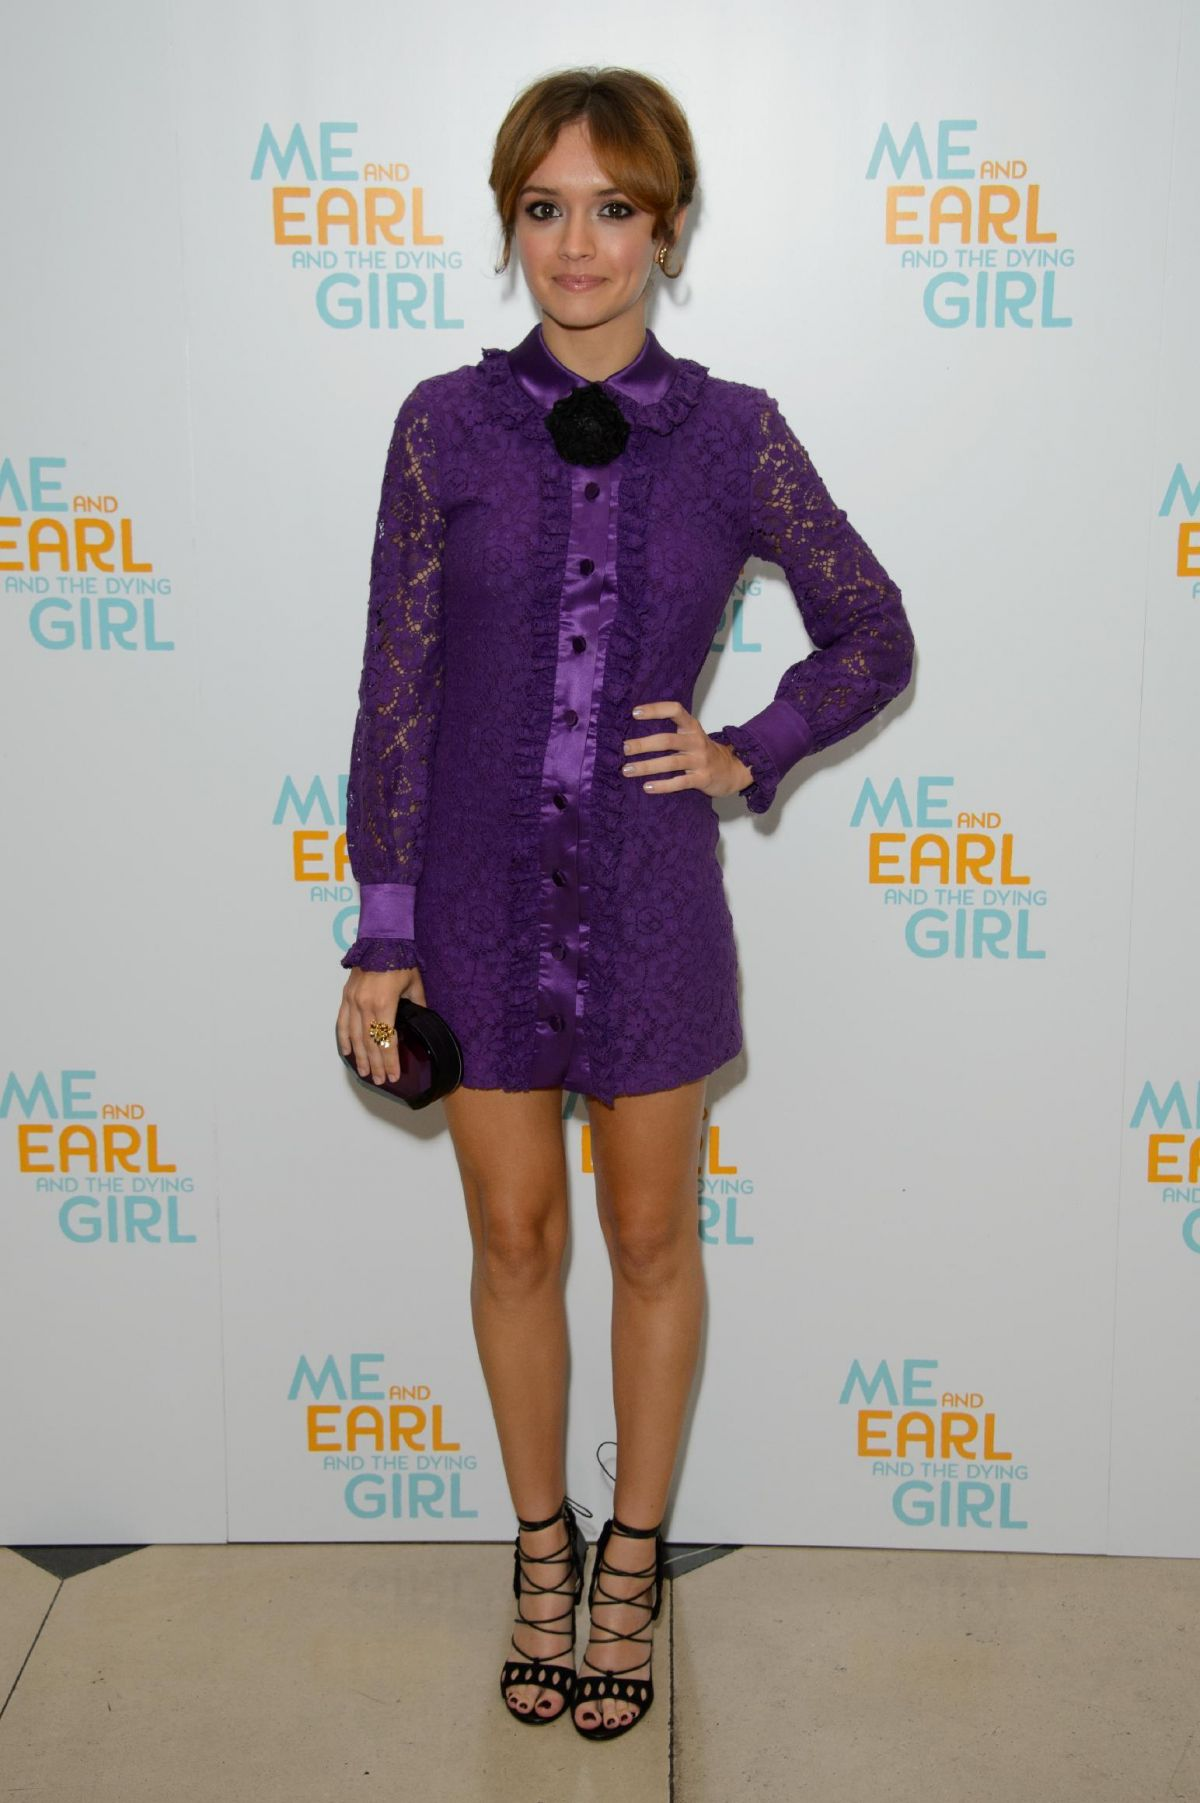 OLIVIA COOKE at Me and Earl and the Dying Girl Premiere in London